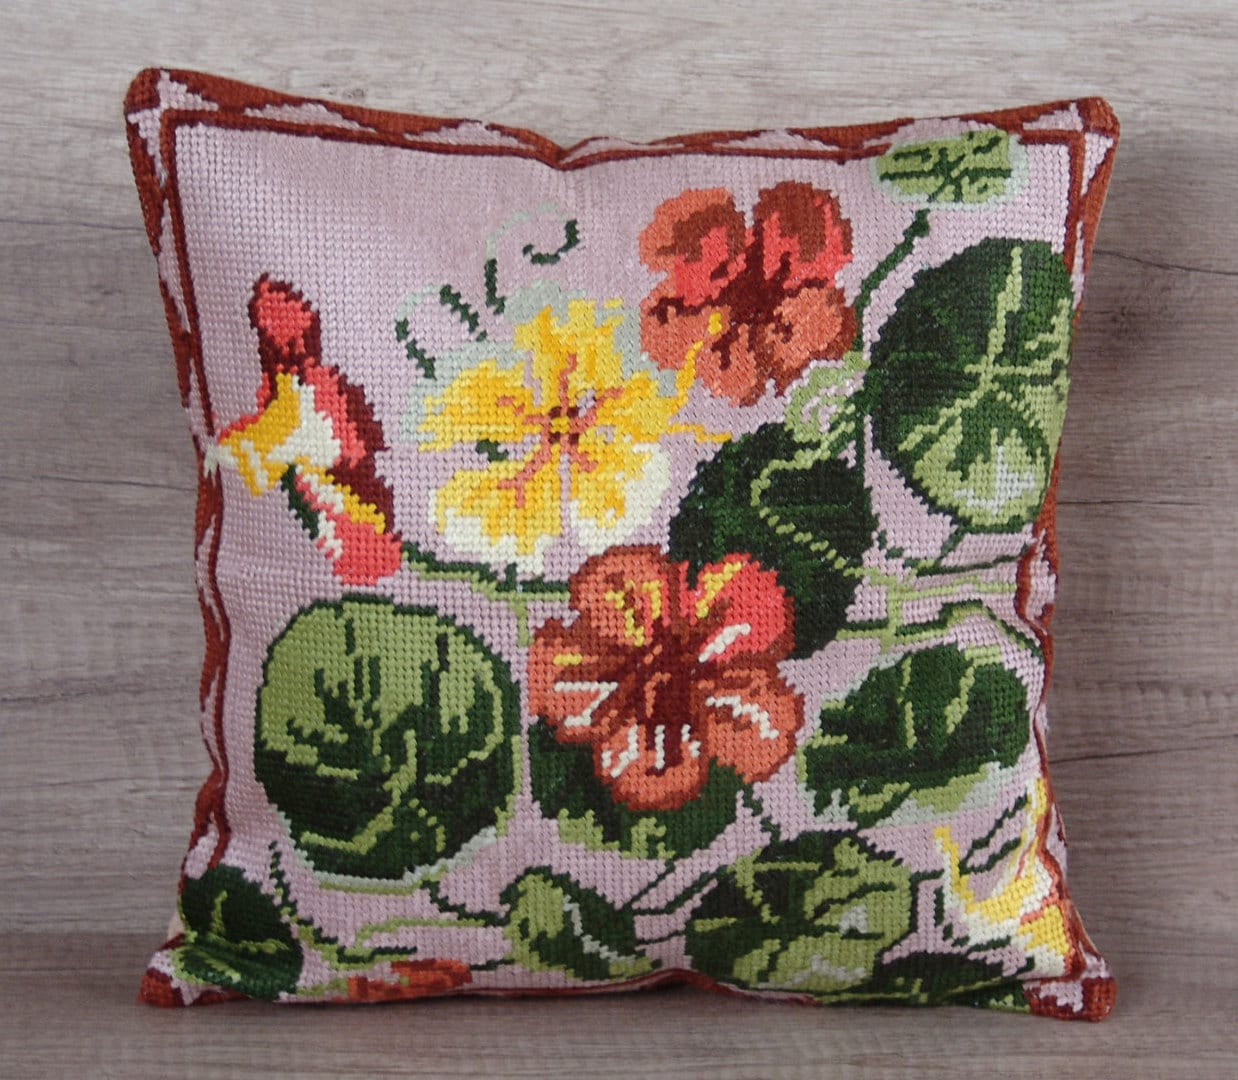 Modern Cross Stitch Pillow : Modern heart-to-heart cross-stitch pillow cover nasturtium